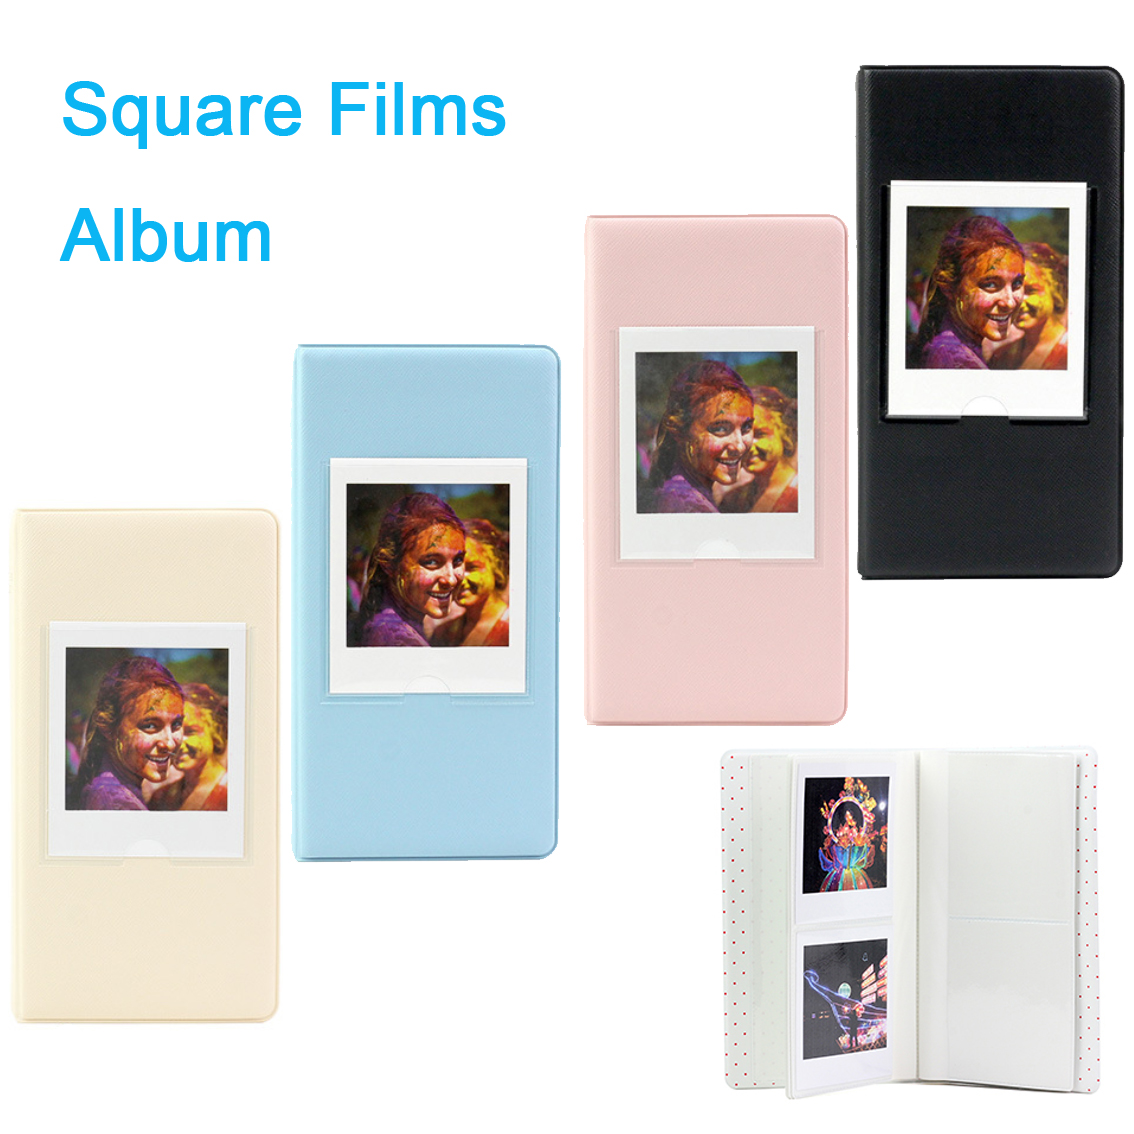 64 Pockets Fuji Fujifilm Instax Square Films Album SQ 10 6 Instant Camera SP-3 Printer Photo Paper Book Album